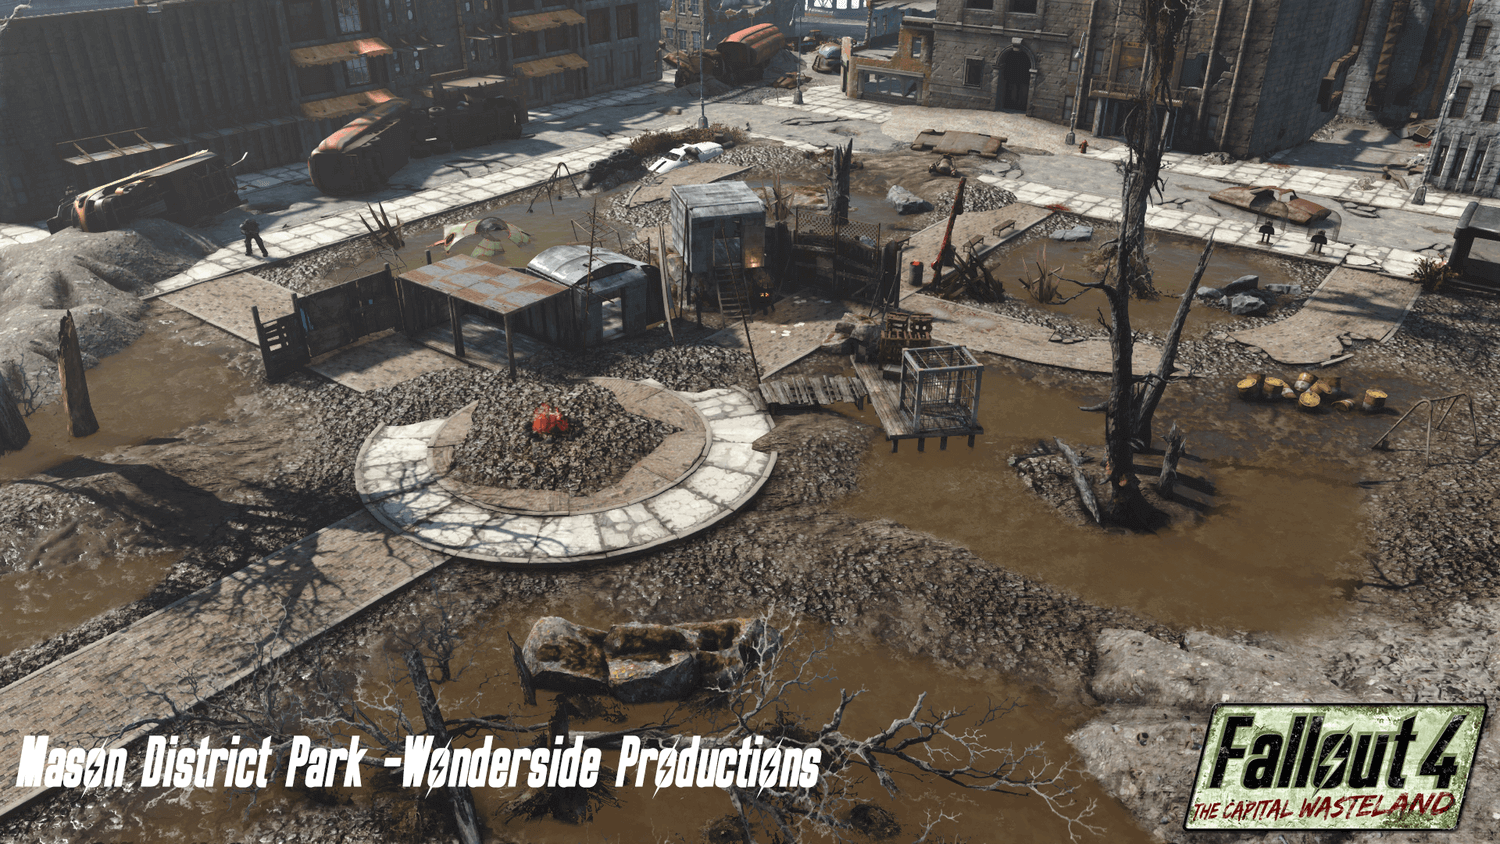 Project that remasters Fallout 3 as a Fallout 4 mod canned